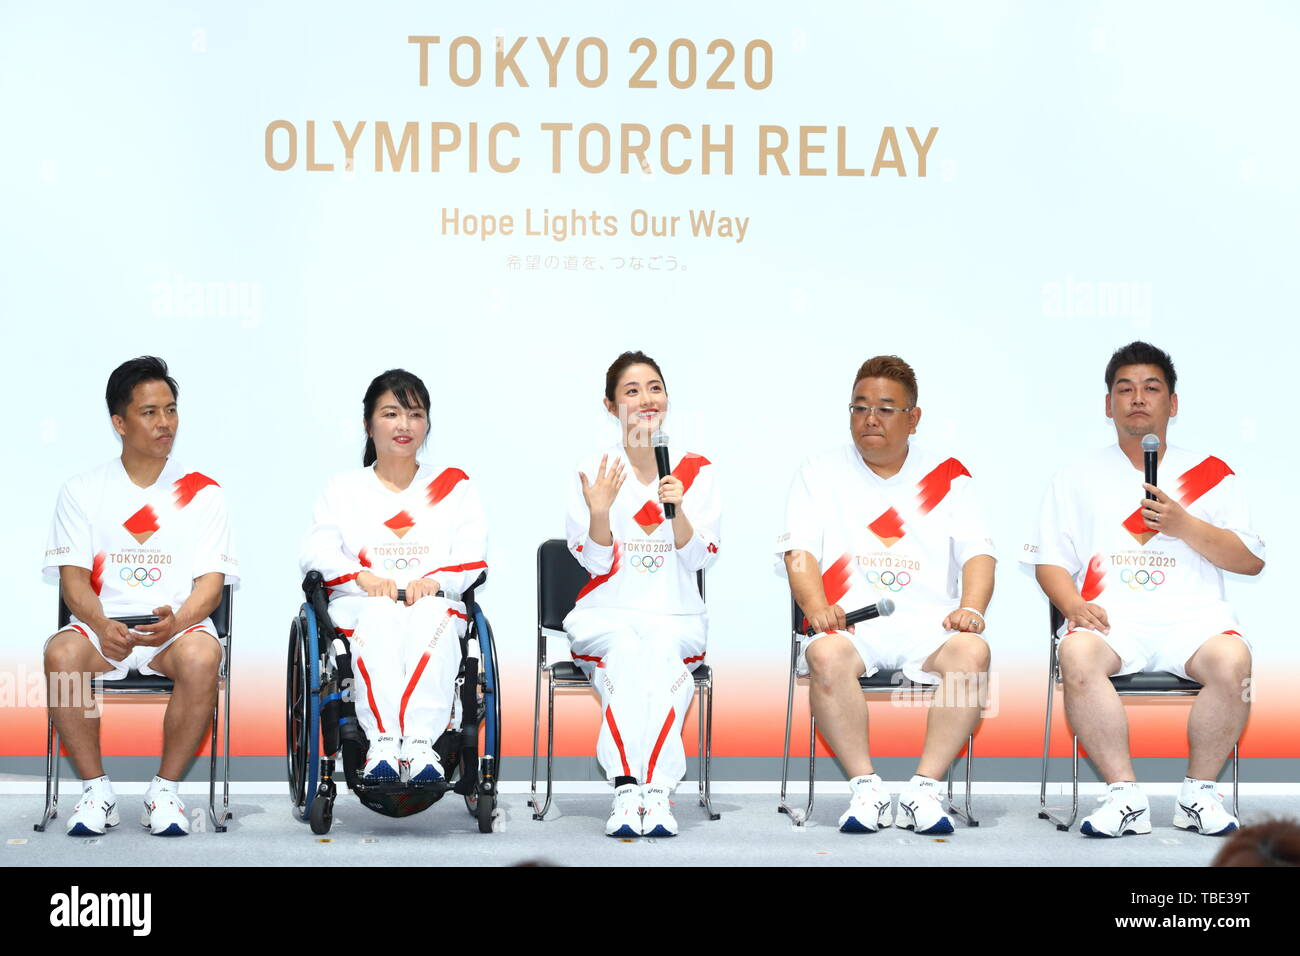 Tokyo, Japan. 1st June, 2019. (L-R) Tadahiro Nomura, Aki Taguchi, Satomi Ishihara, Mikio Date, Takeshi Tomizawa, The Tokyo Organising Committee of the Olympic and Paralympic Games (Tokyo 2020) holds commemorative event of Torch Relay in Tokyo, Japan on June 1, 2019, 300 days before of the Japanese leg of the Tokyo 2020 Olympic Torch Relay starts. The Organising Committee unveiled an official uniform, course outline and applicant guidelines for Torch Relay Runners. Credit: Naoki Nishimura/AFLO SPORT/Alamy Live News - Stock Image